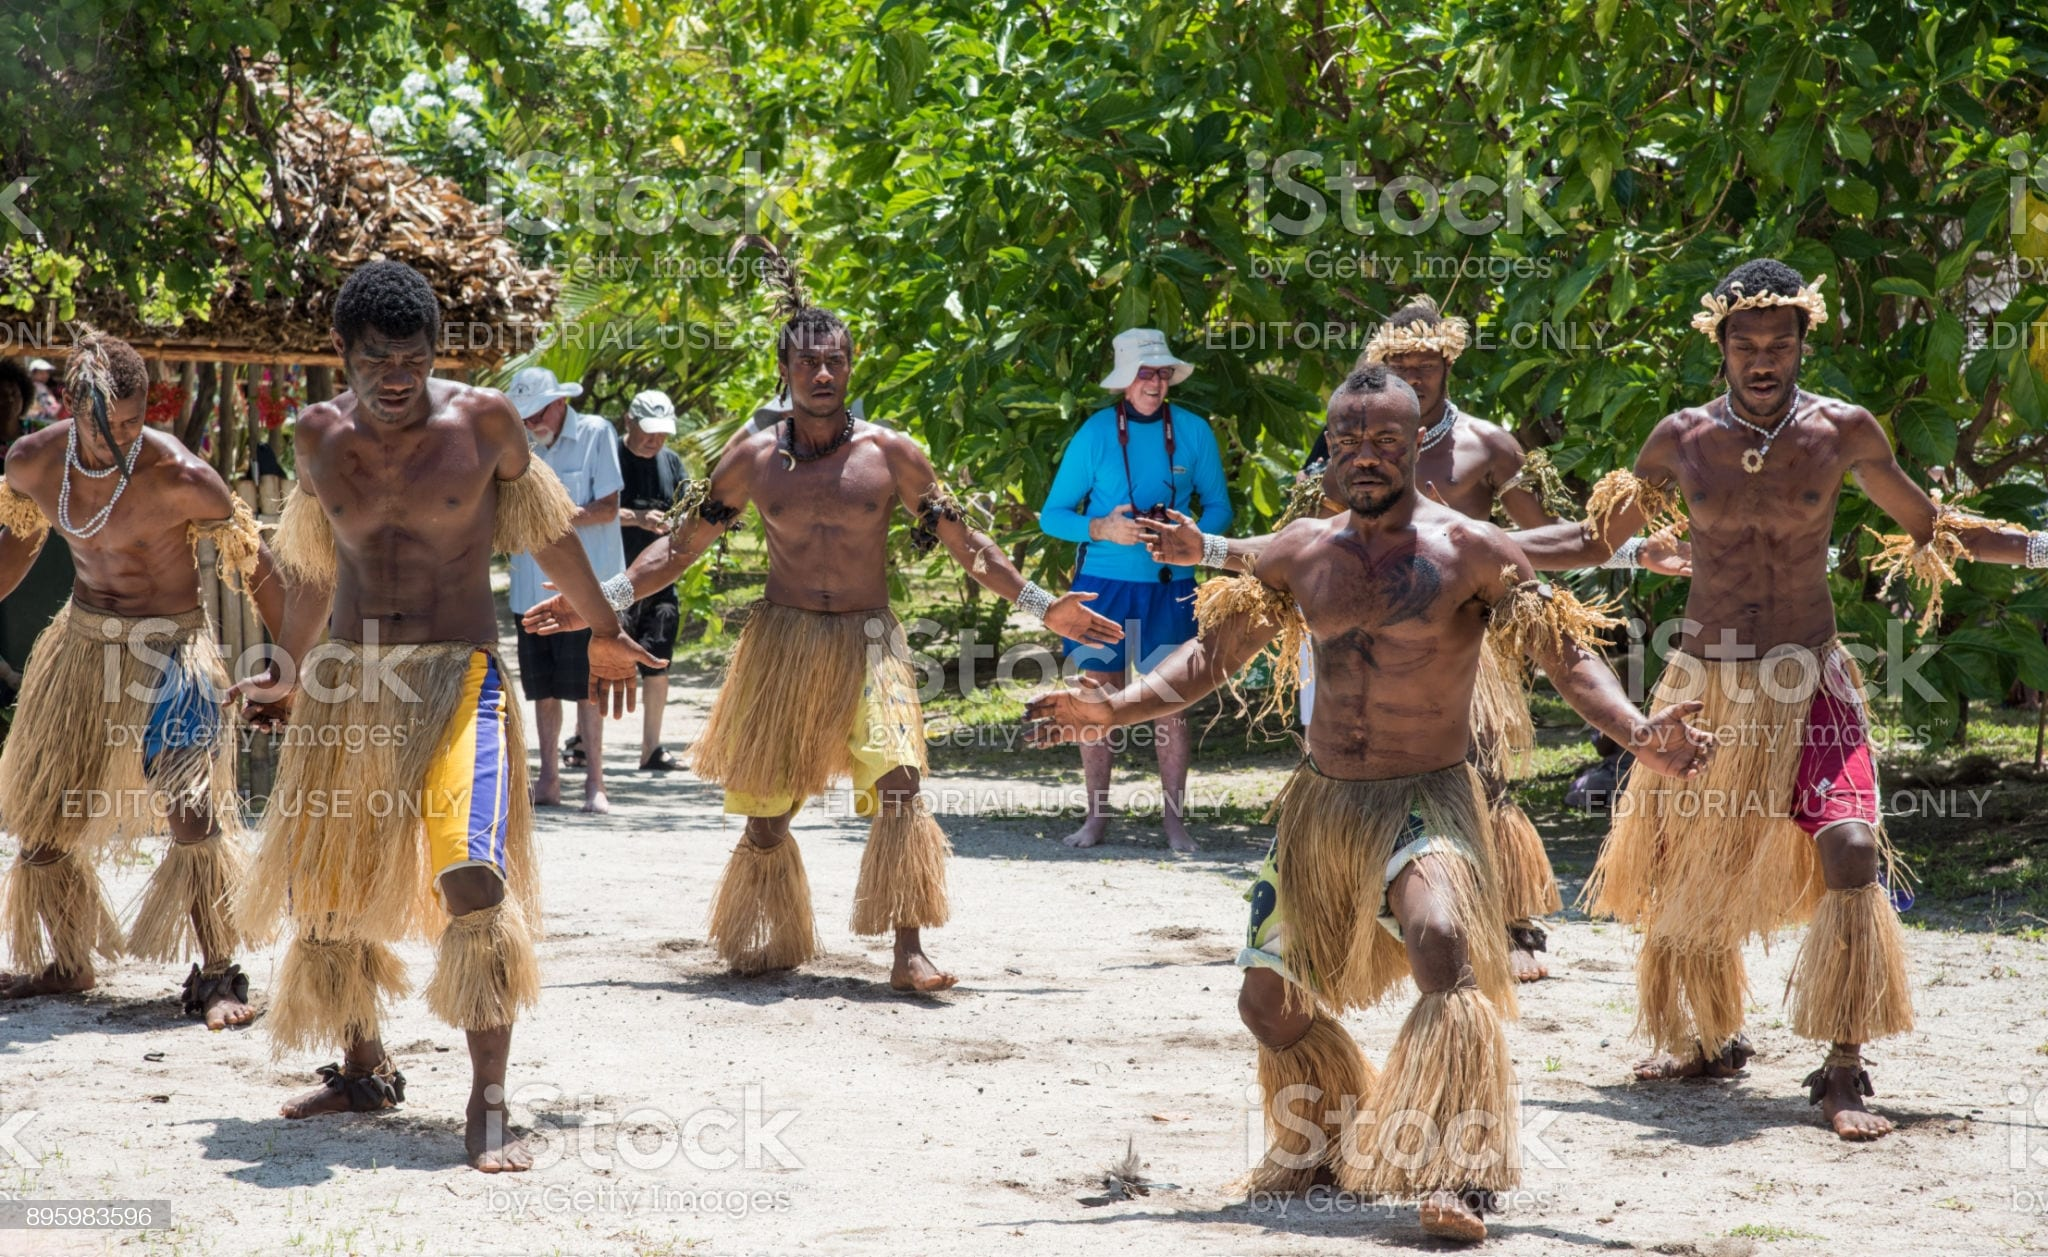 Mystery Island, Vanuatu, Pacific Islands-December 2,2016: Synchronous dance troupe in traditional dress performing on the uninhabited, tropical Mystery Island, Vanuatu